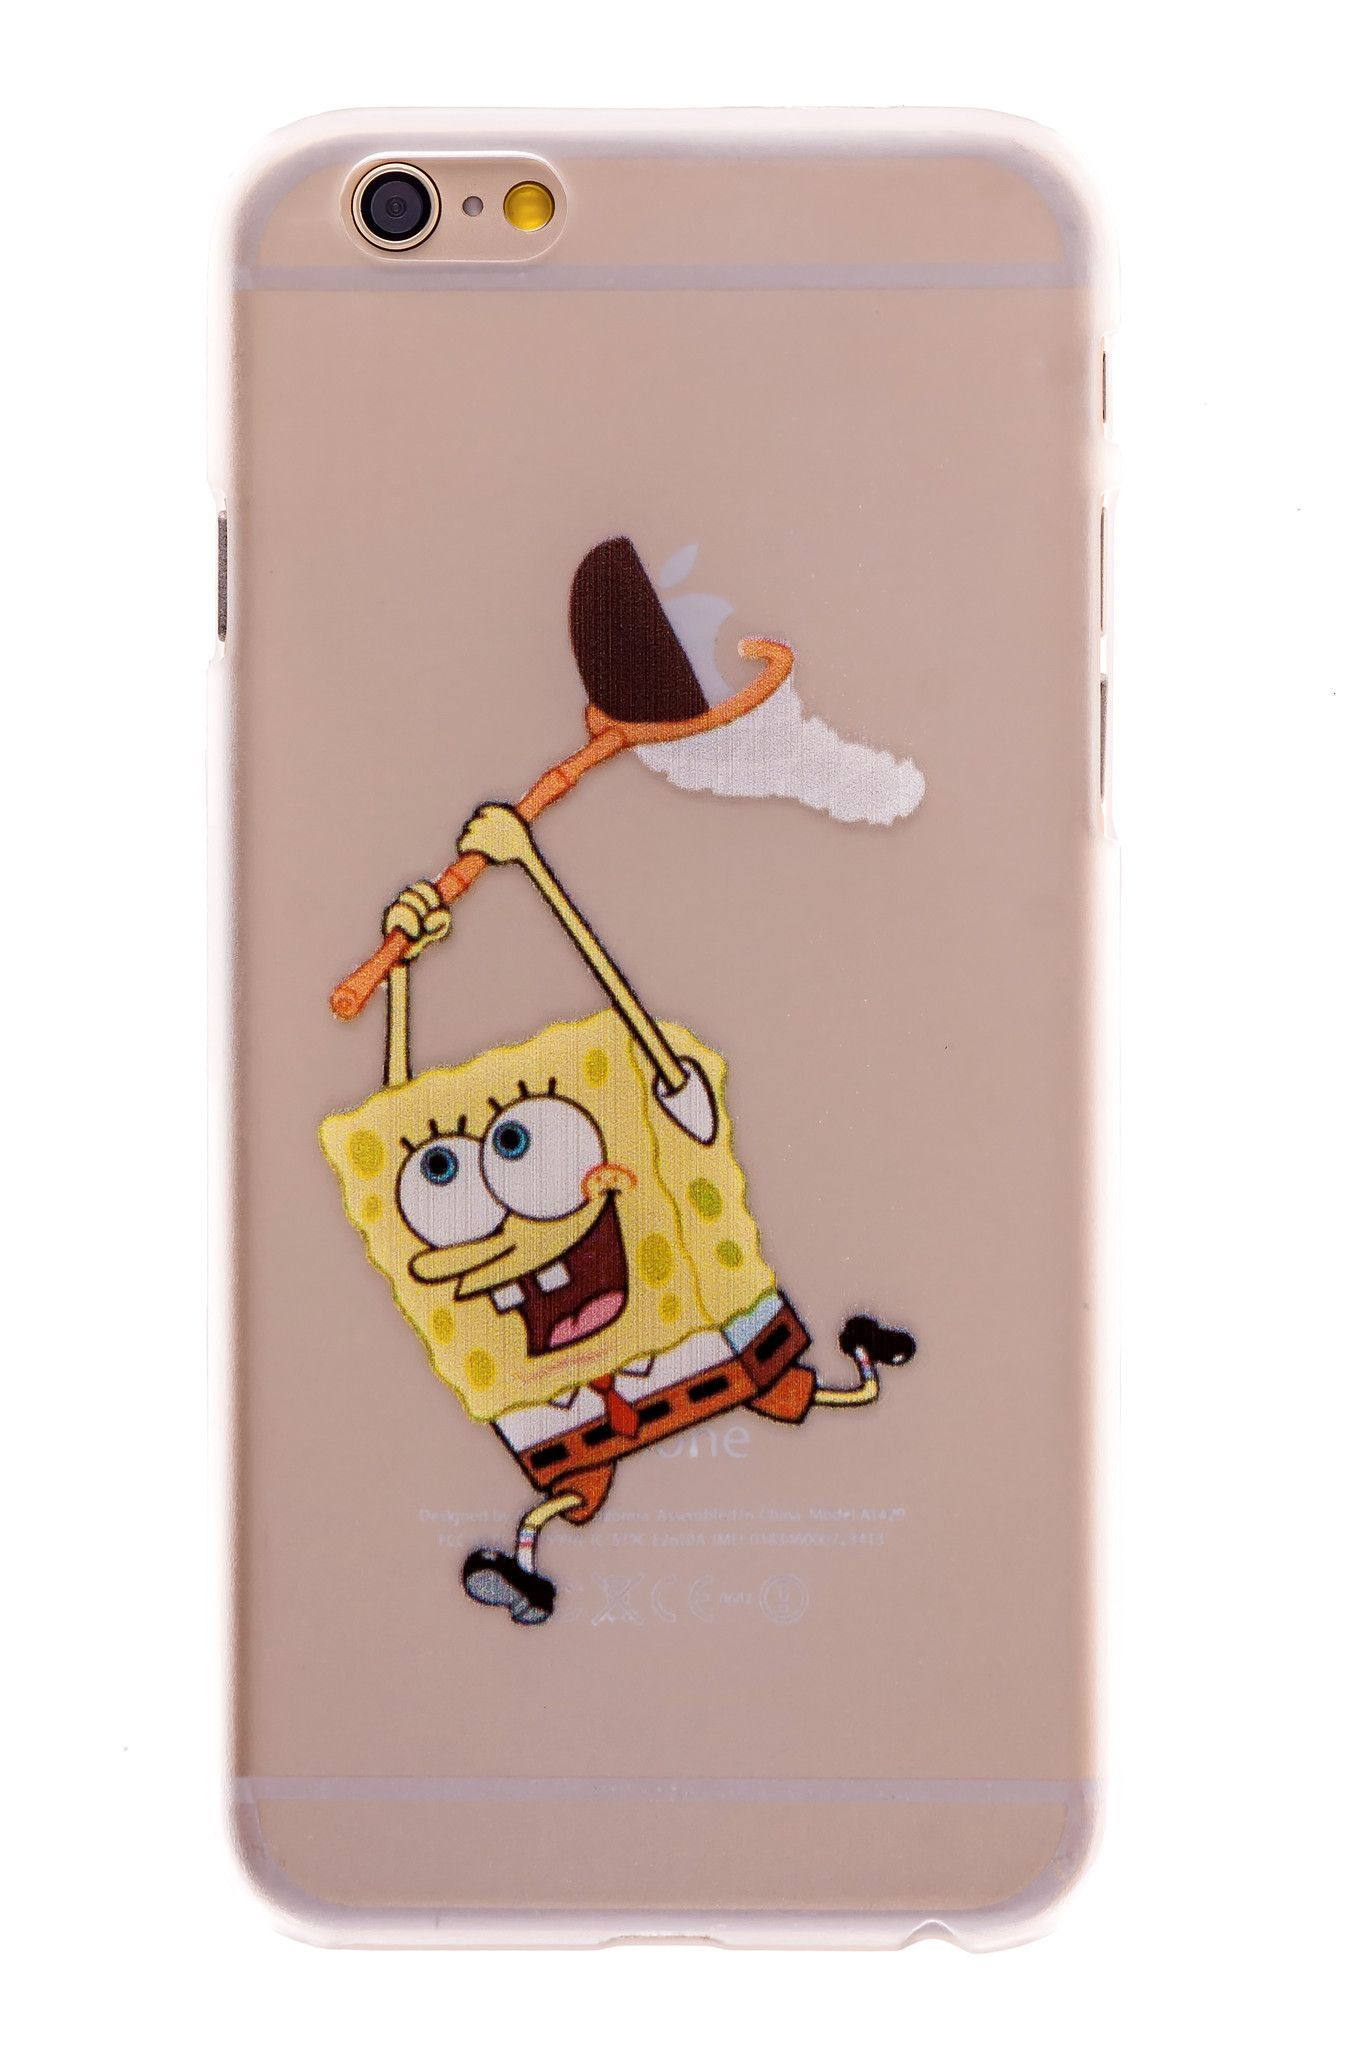 acdb29910a4 Spongebob Transparent Back Cover Case for iPhone 6 Plus | Phone ...